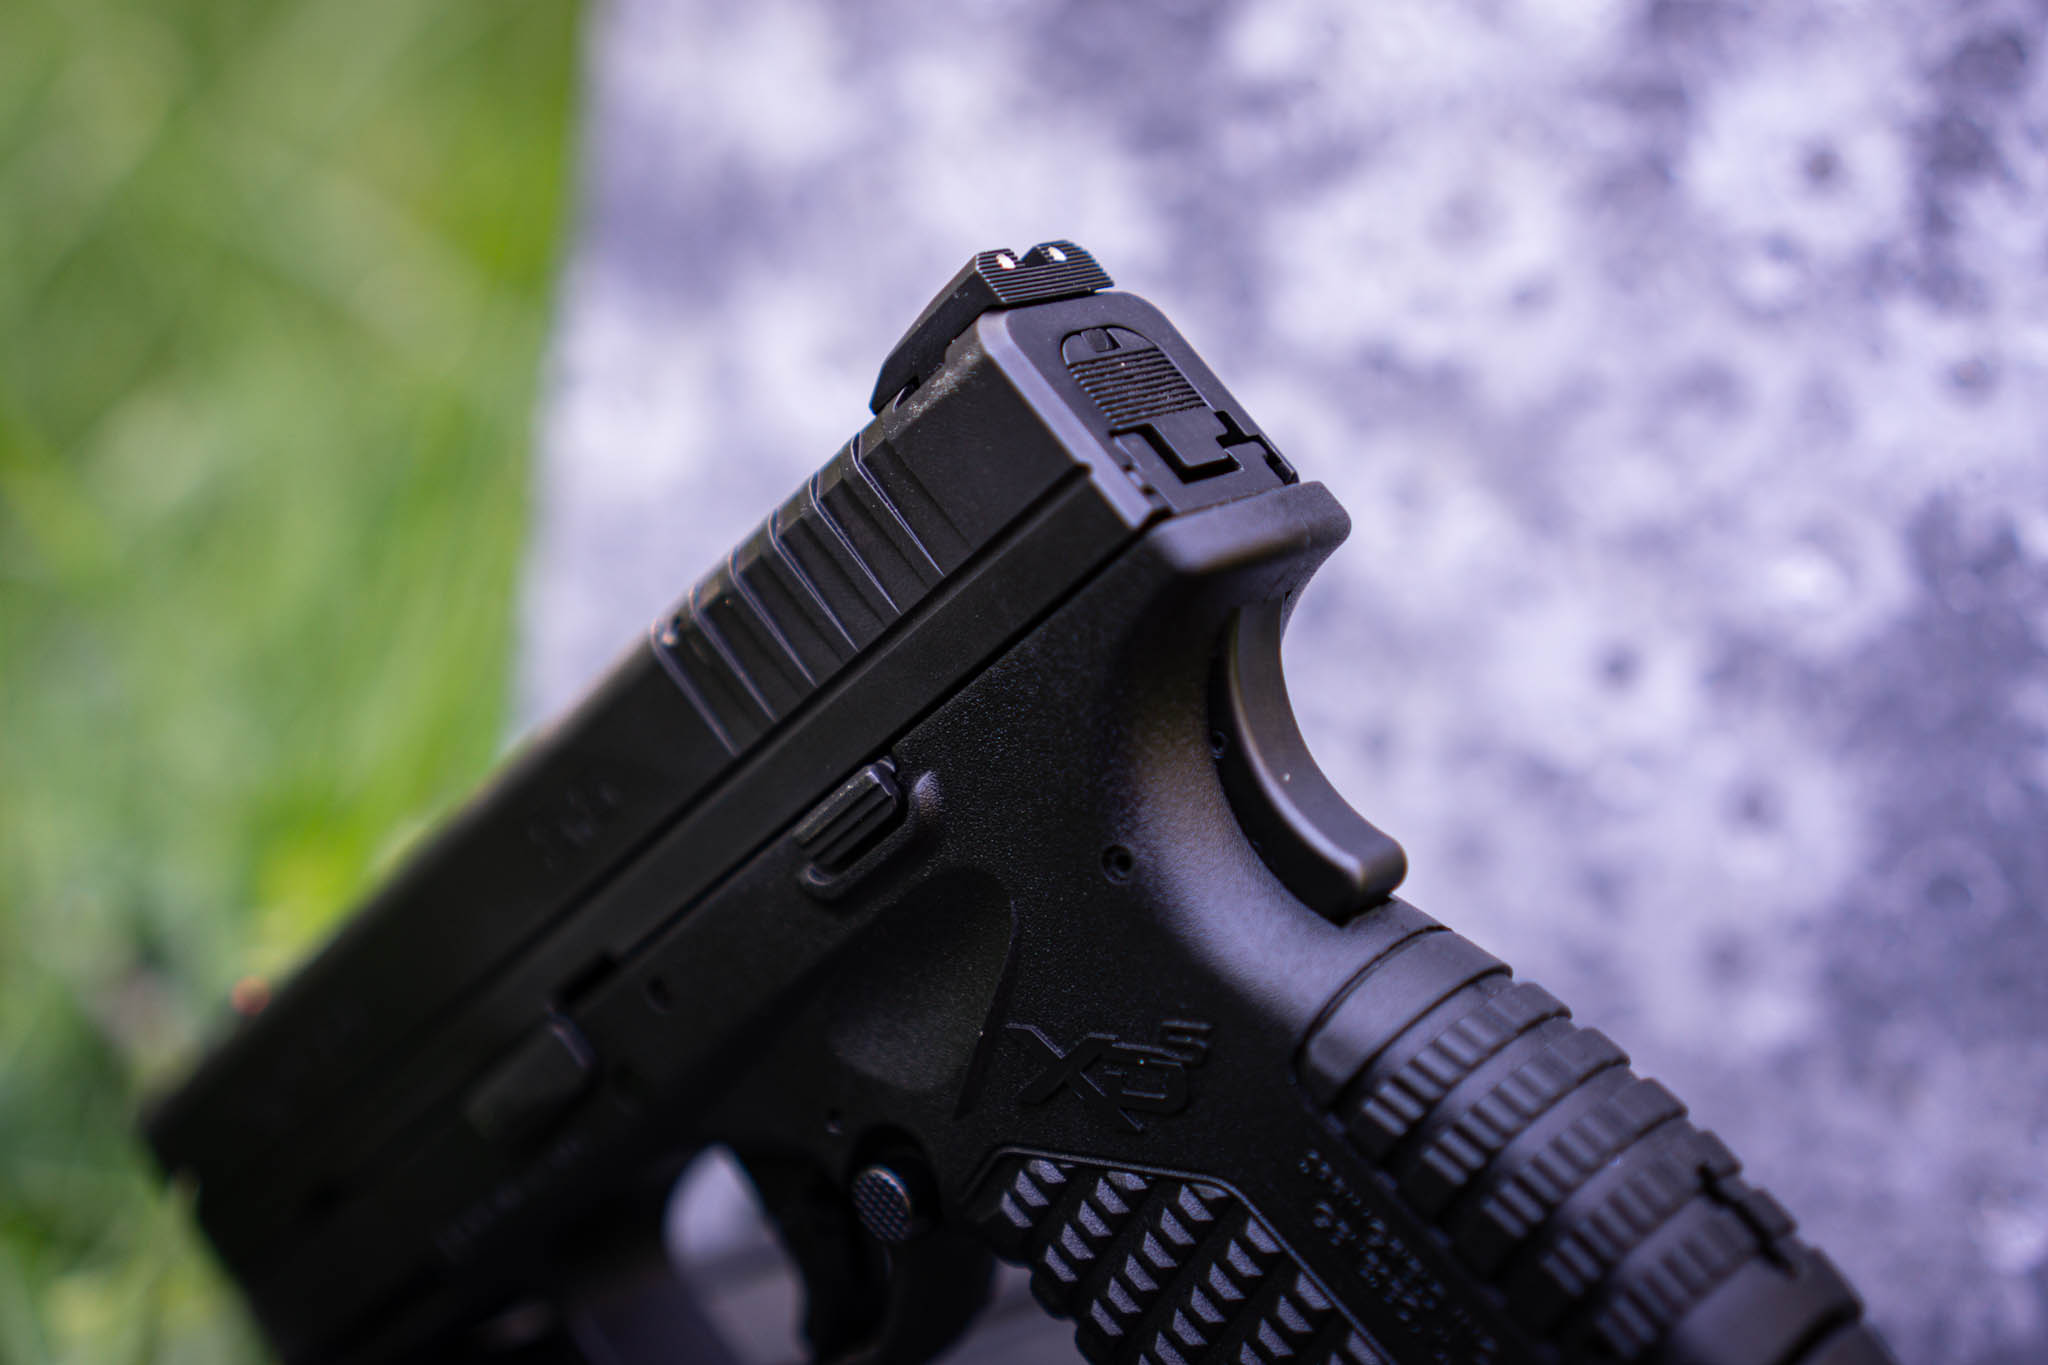 Springfield XDS Grip Safety